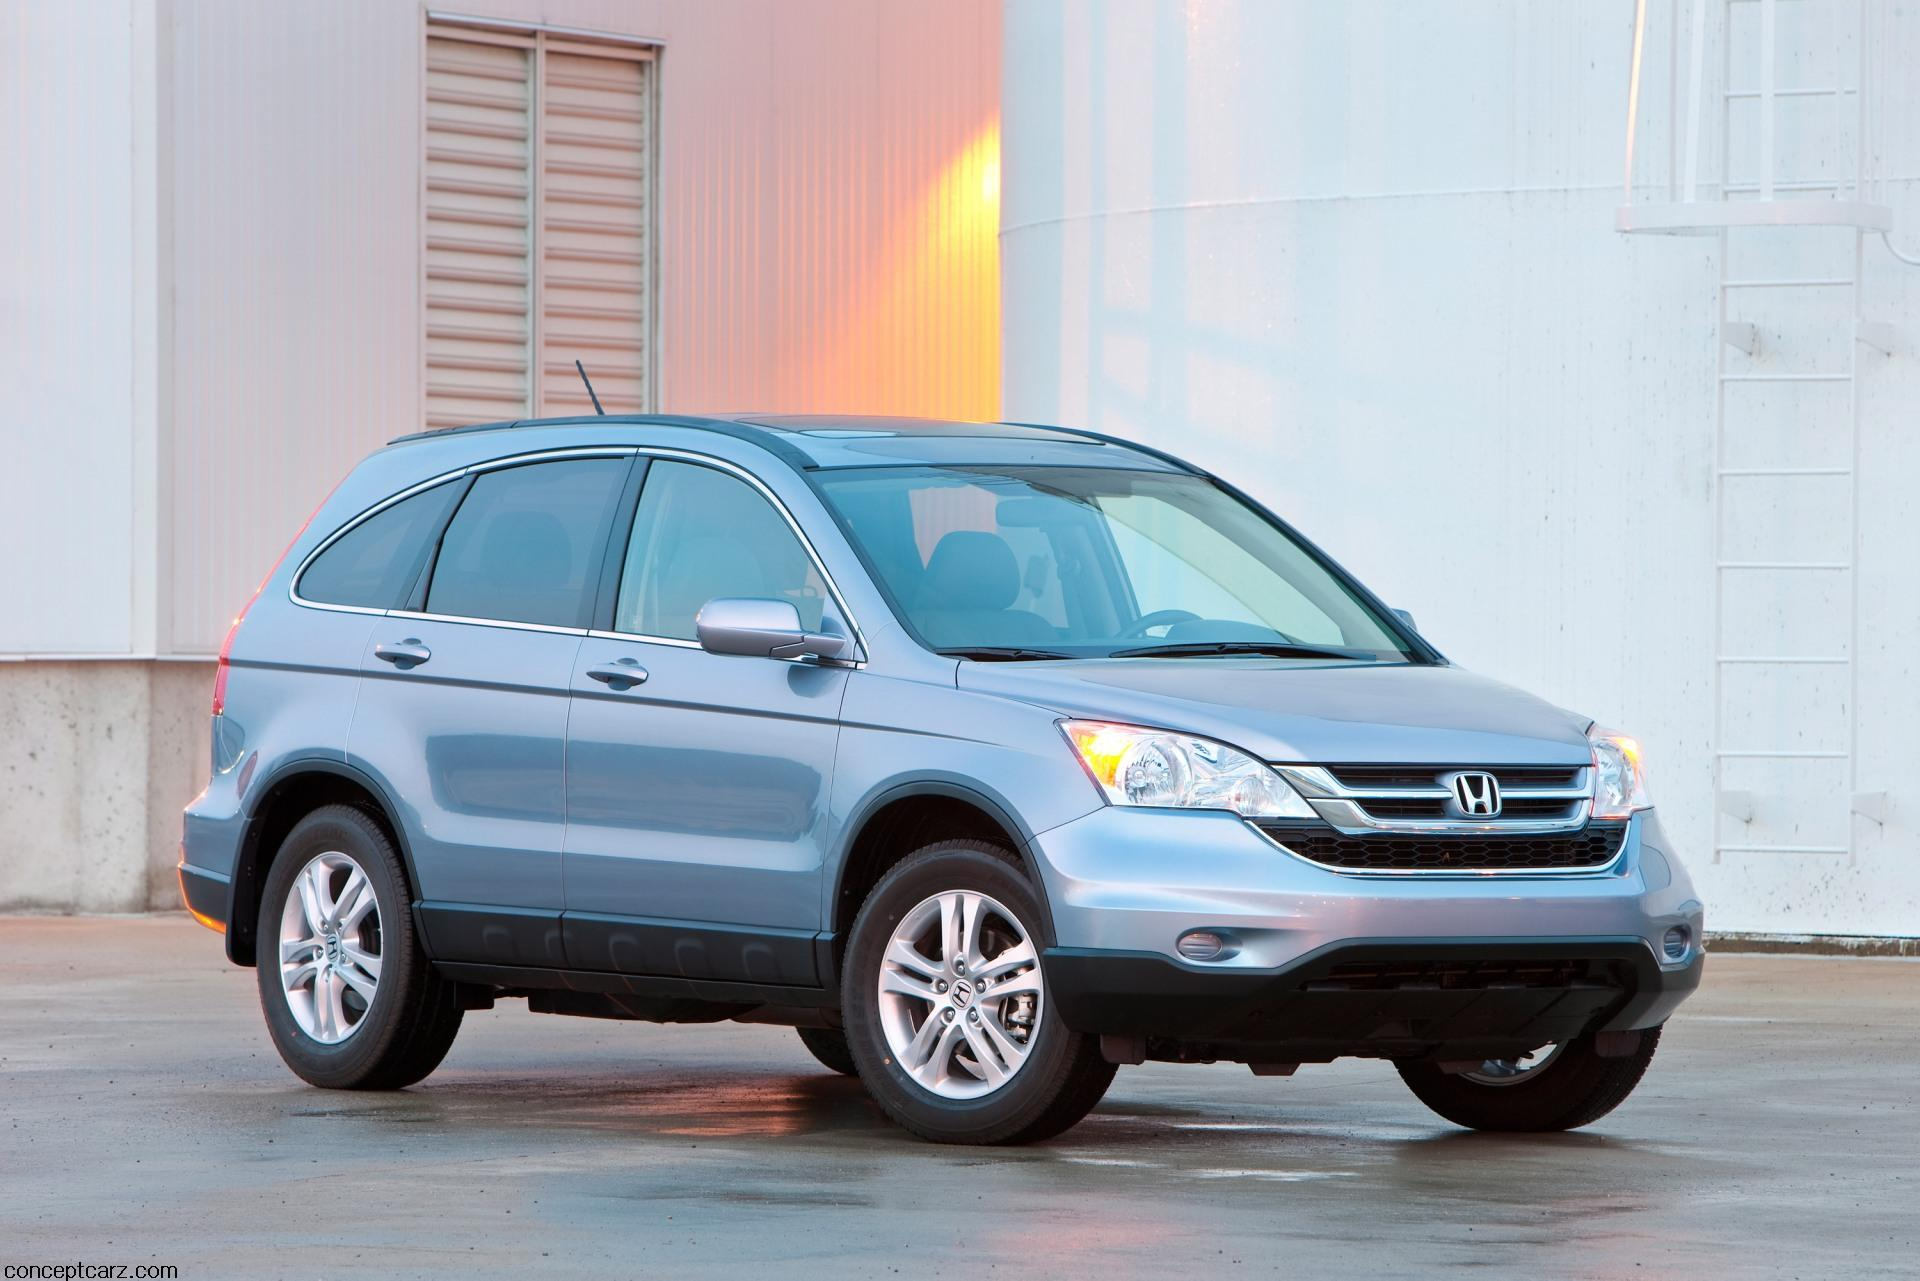 2011 Honda CR-V News and Information | conceptcarz.com